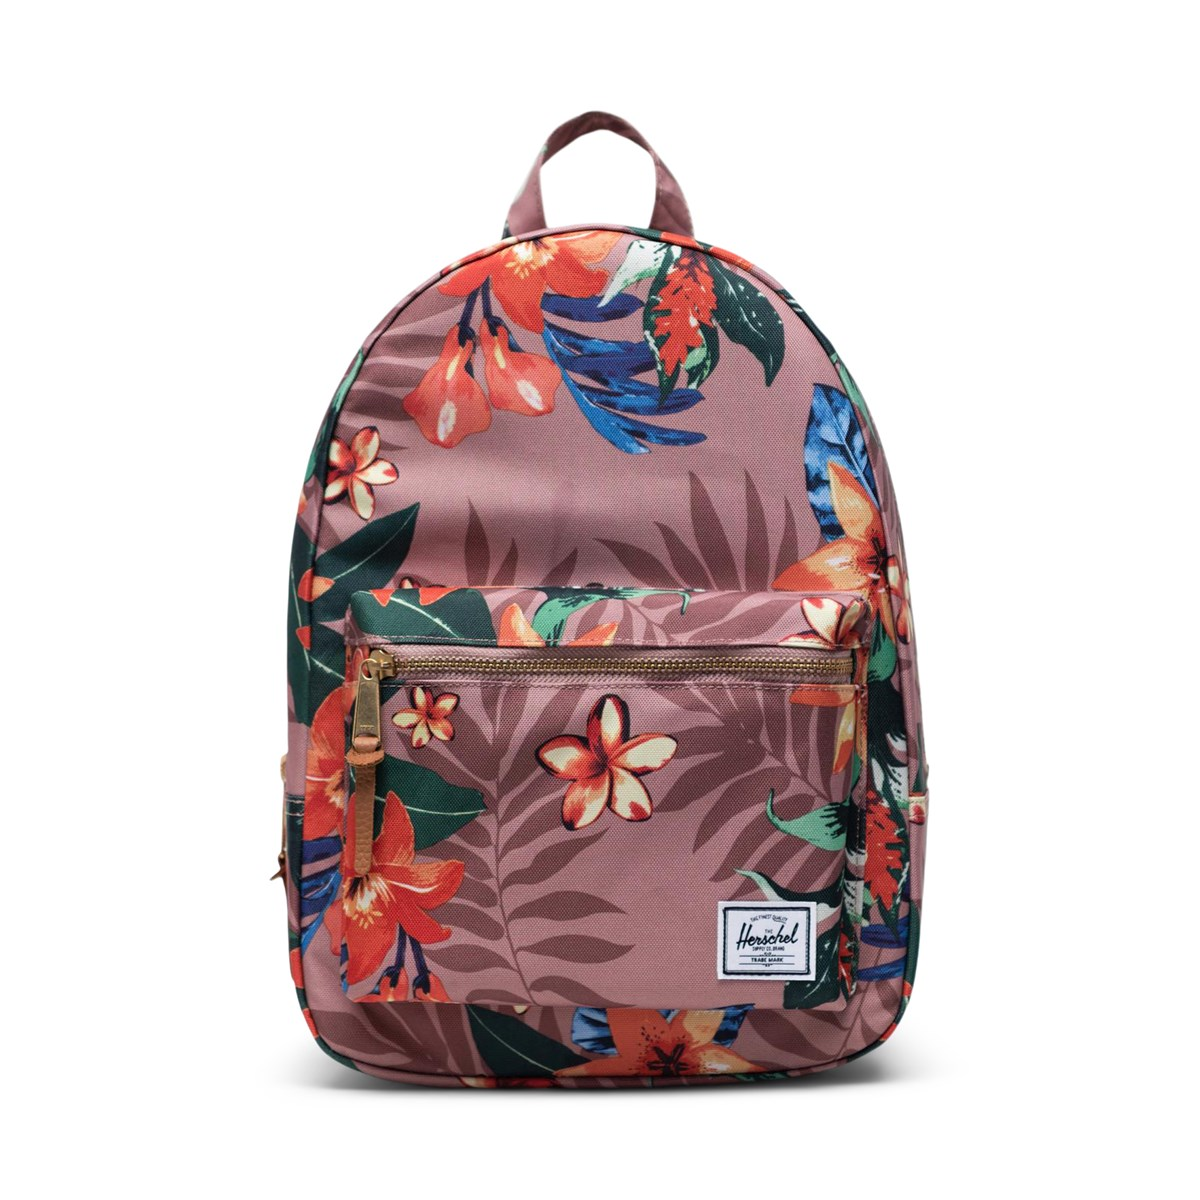 Floral Grove Small Backpack in Ash Rose